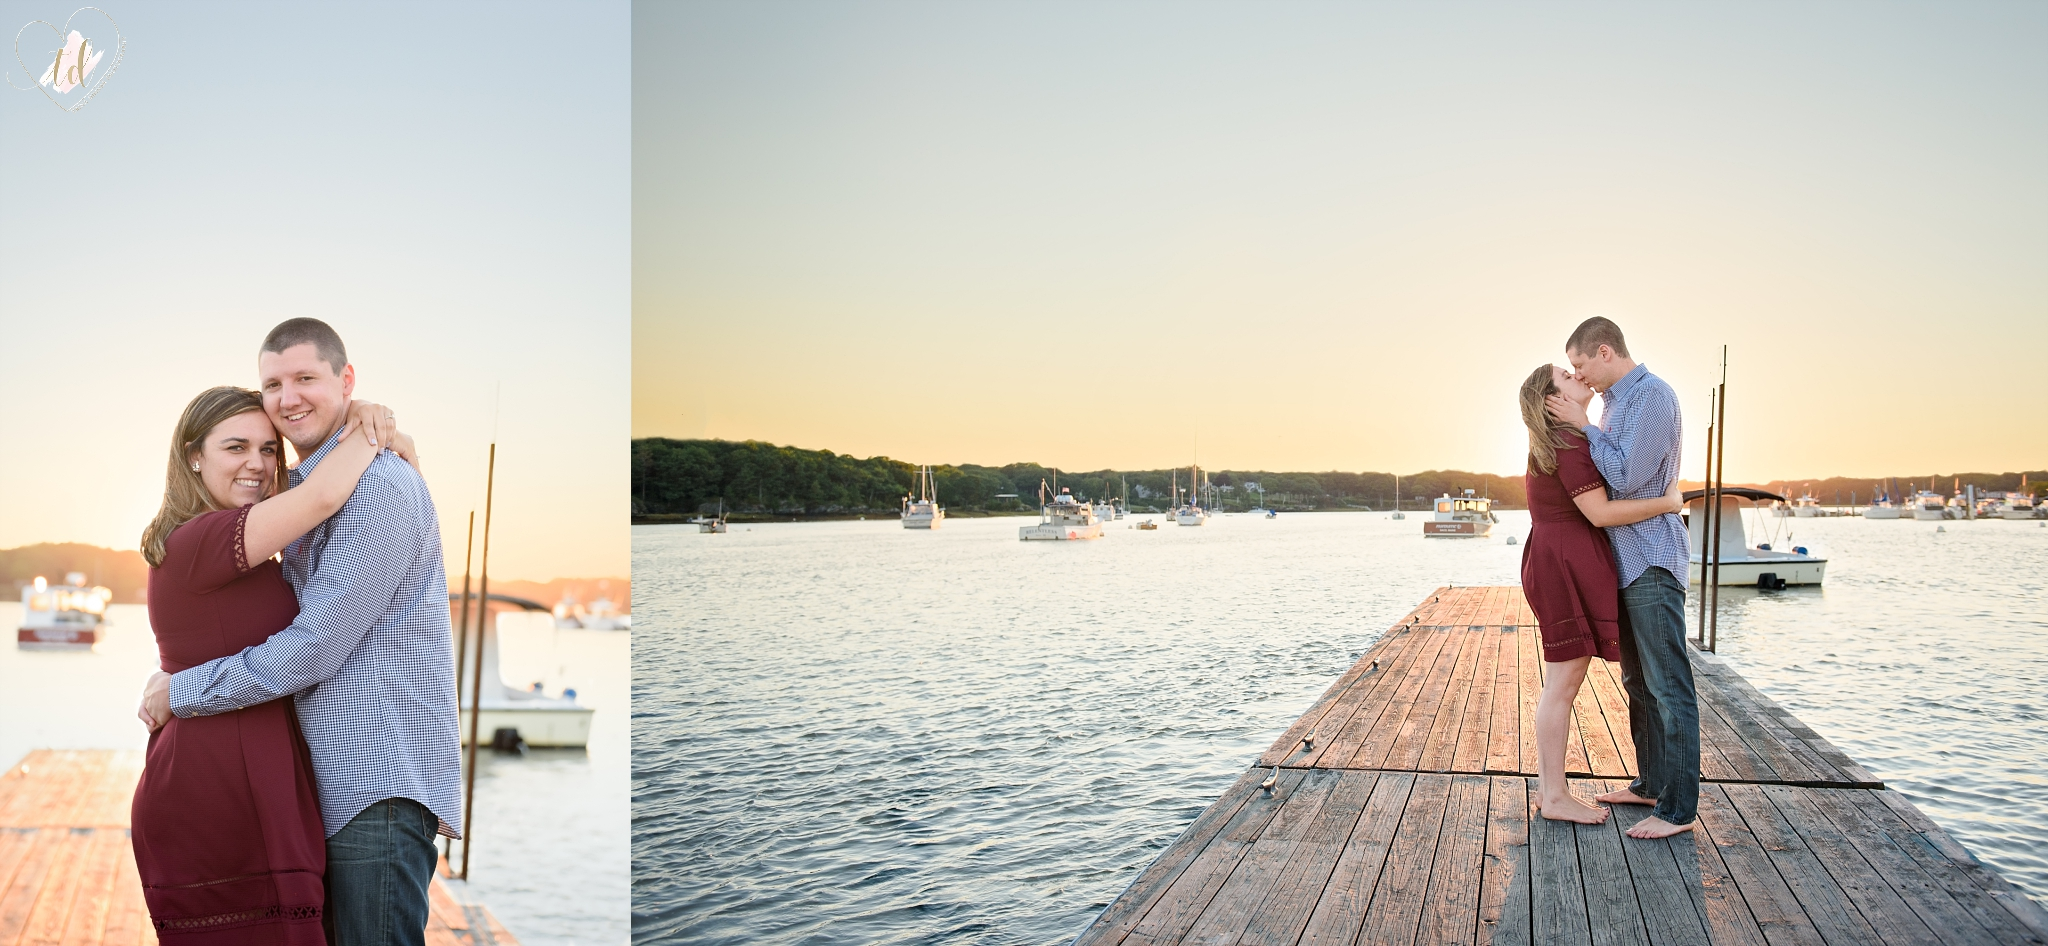 Couple poses on dock overlooking Maine beach harbor during their engagement session.